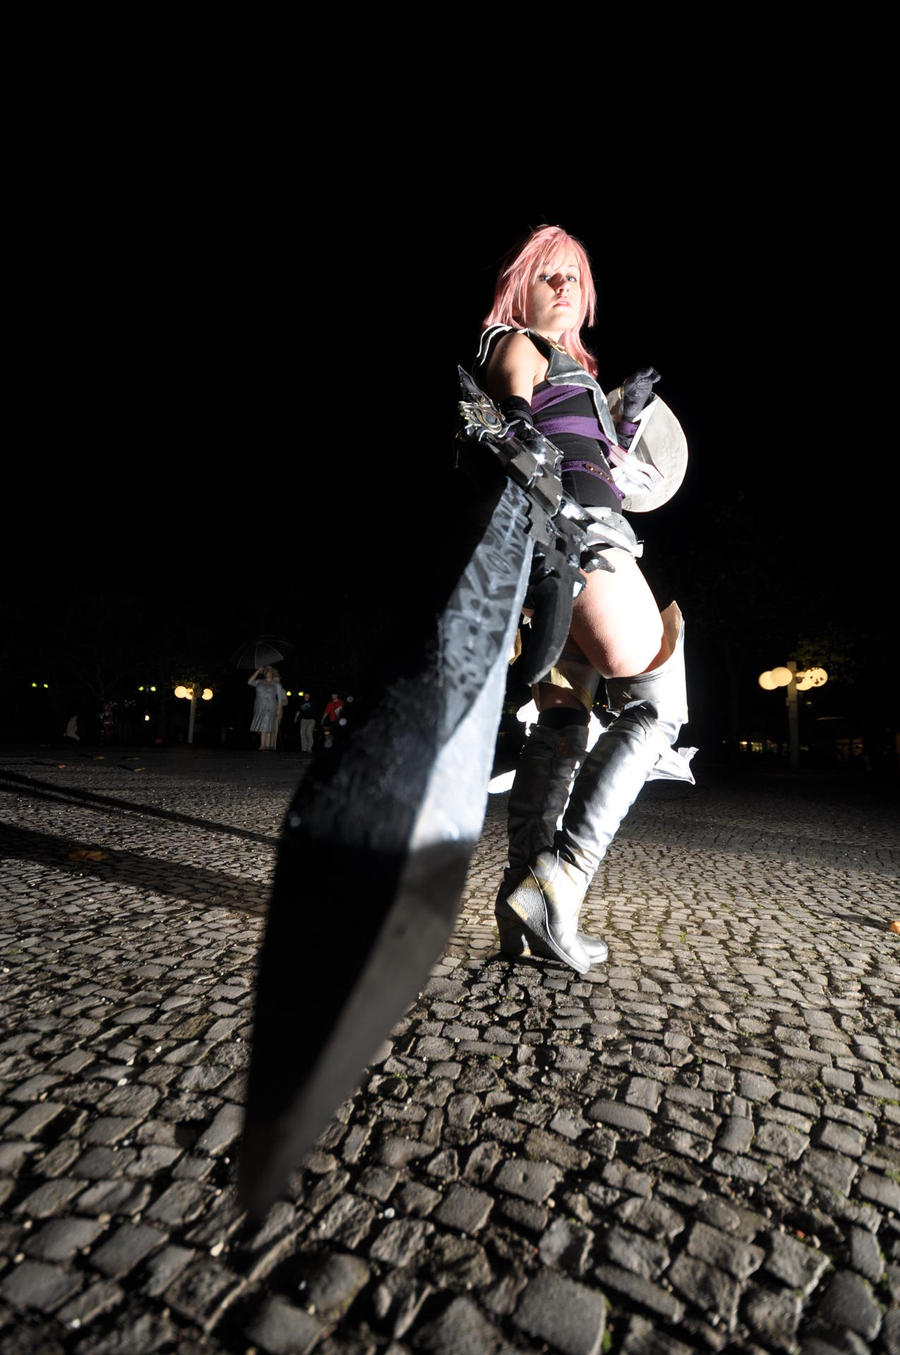 Lightning Cosplay at Animaco 2012 by DYuki